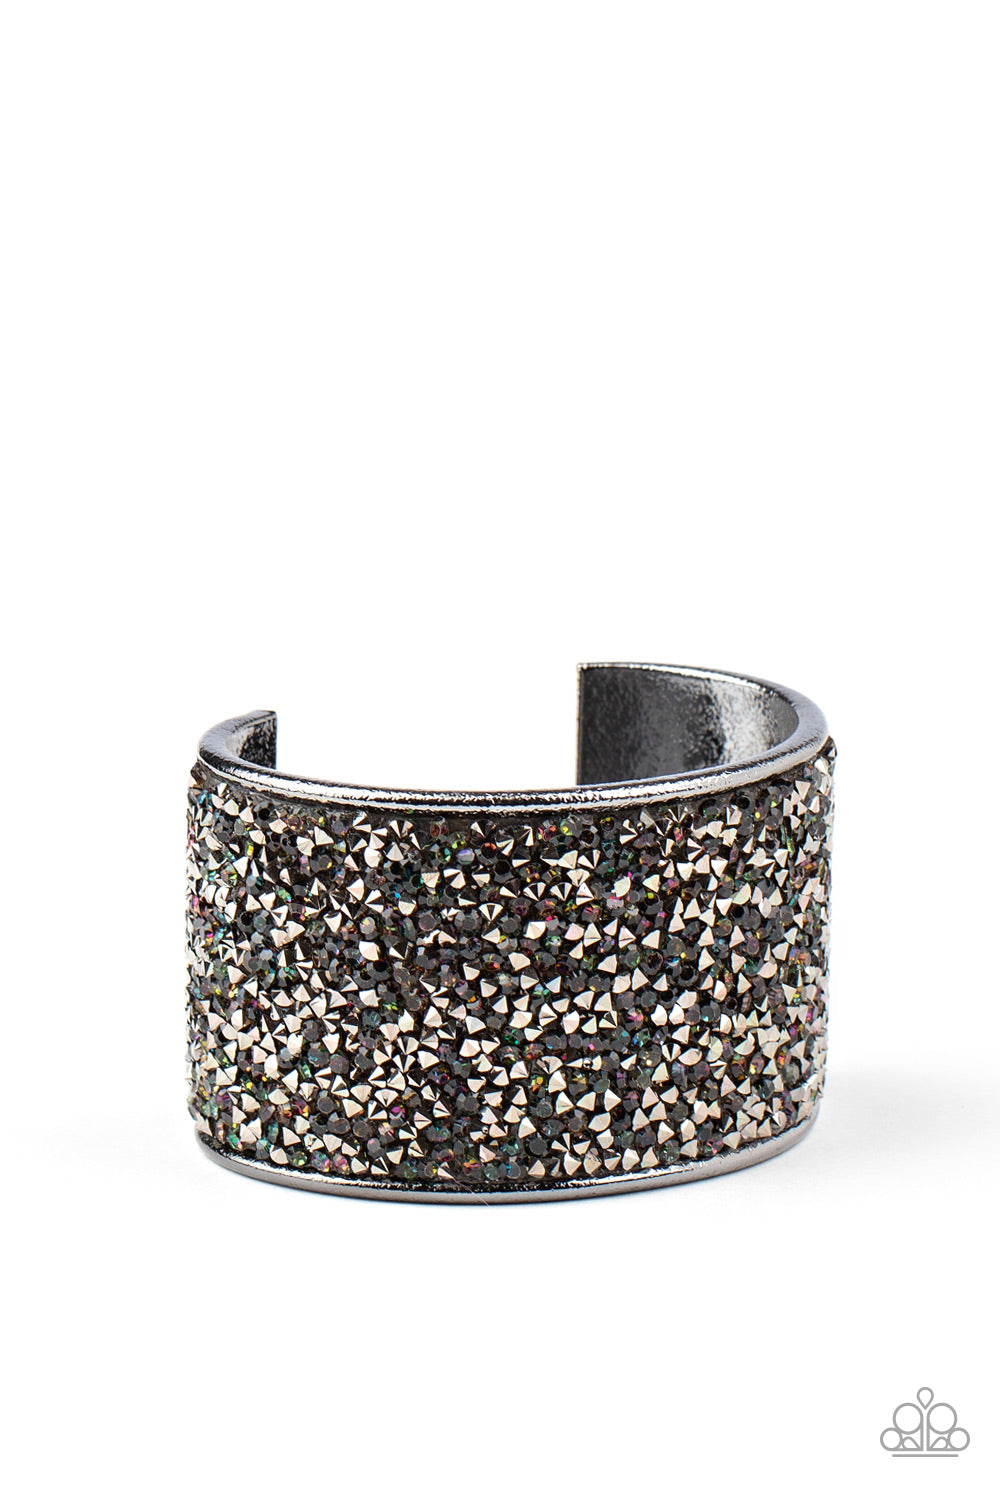 Paparazzi Stellar Radiance Multi Cuff Bracelet - Life Of The Party Exclusive October 2020